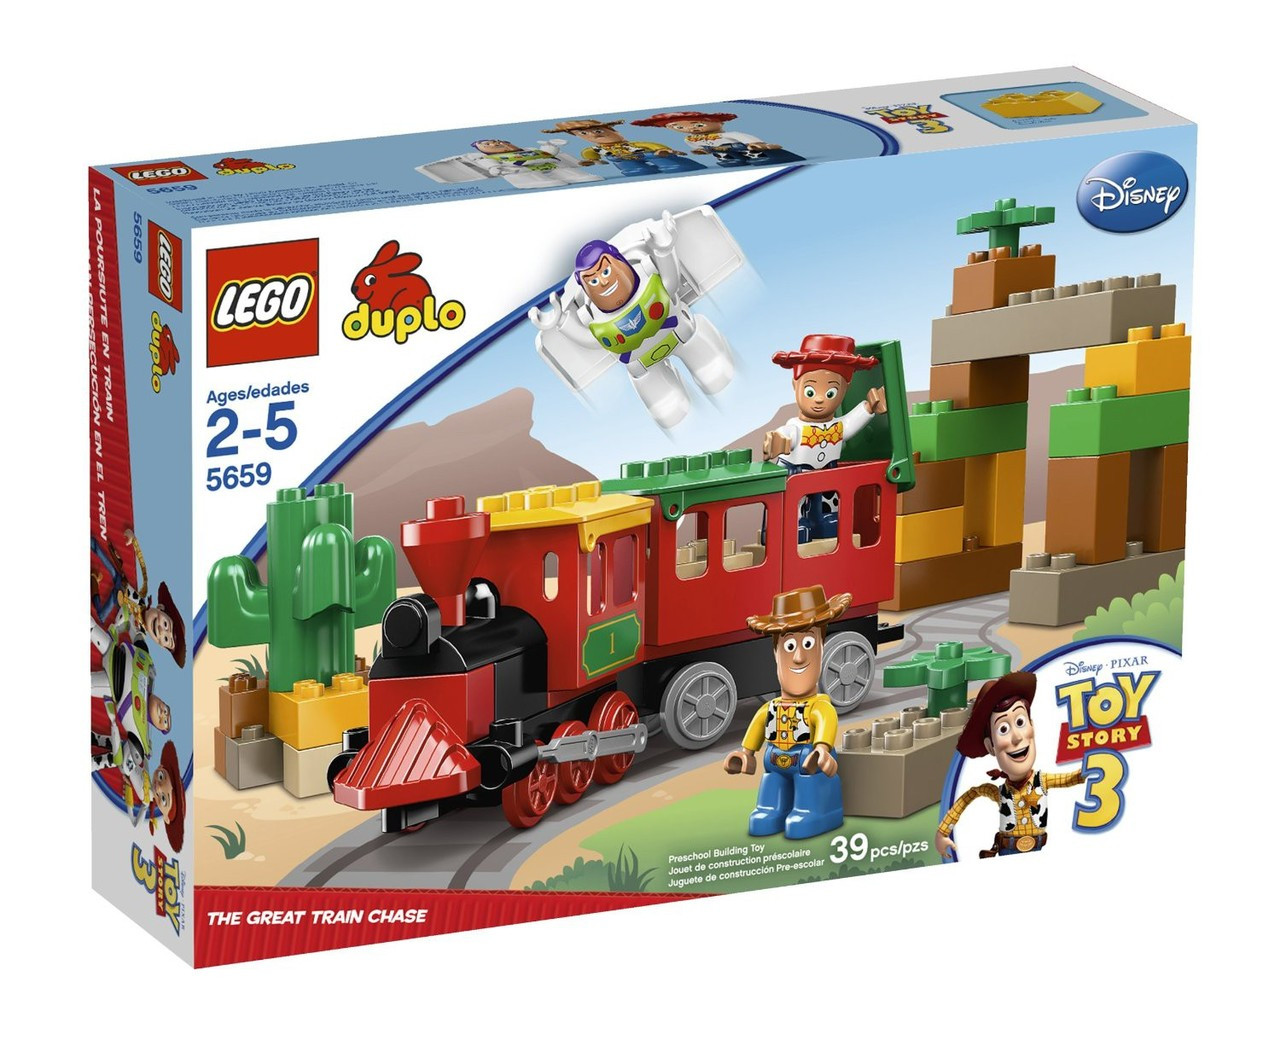 Lego toy story duplo toy story 3 great train chase set - Lego toys story ...